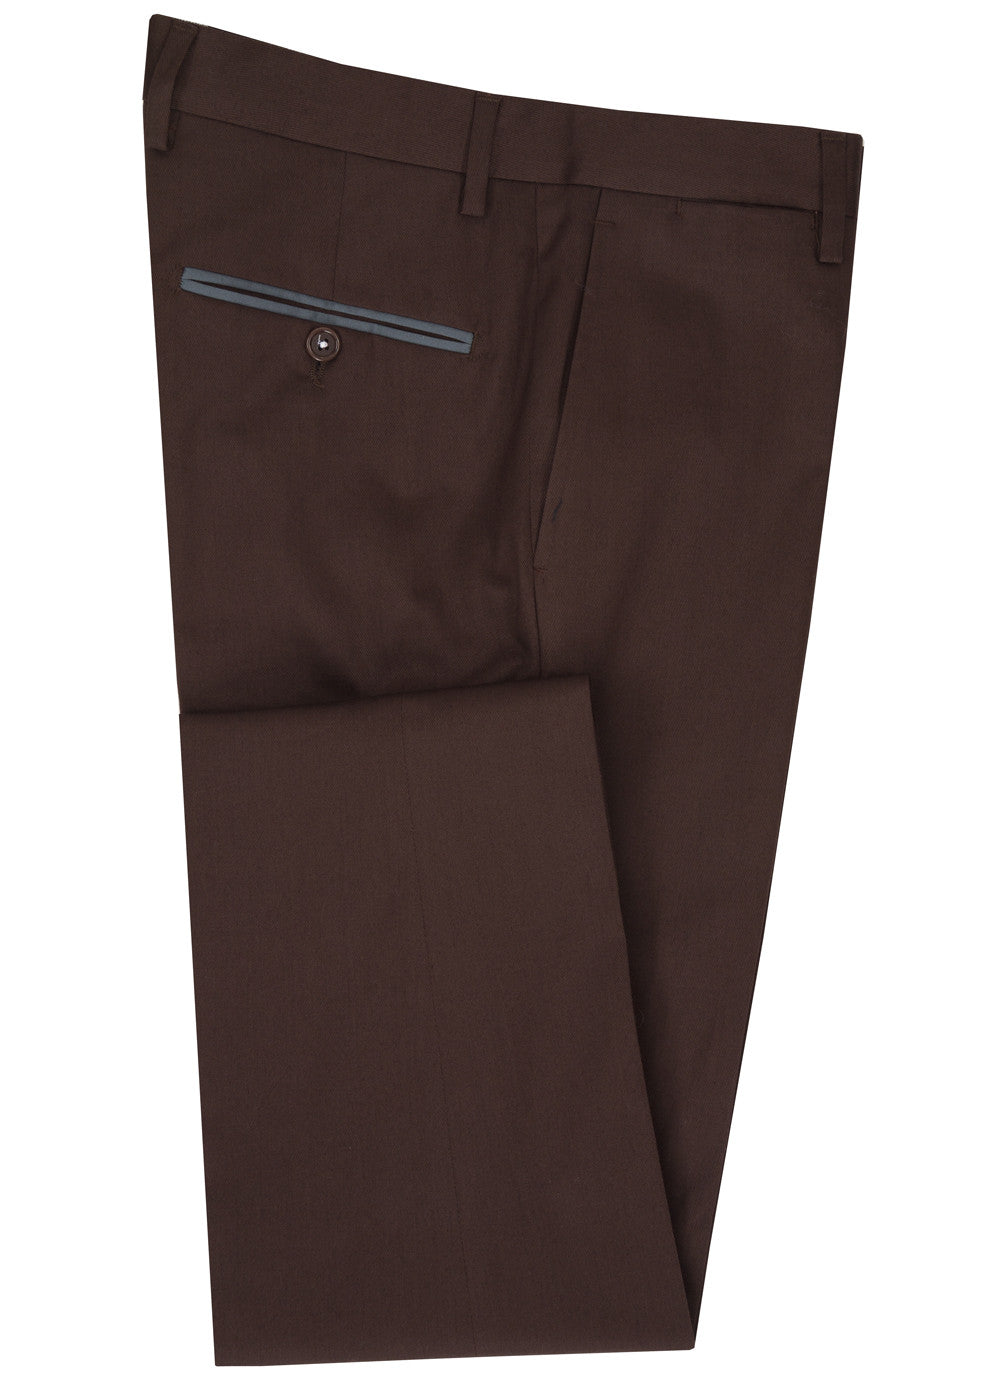 Brown Trim Pant